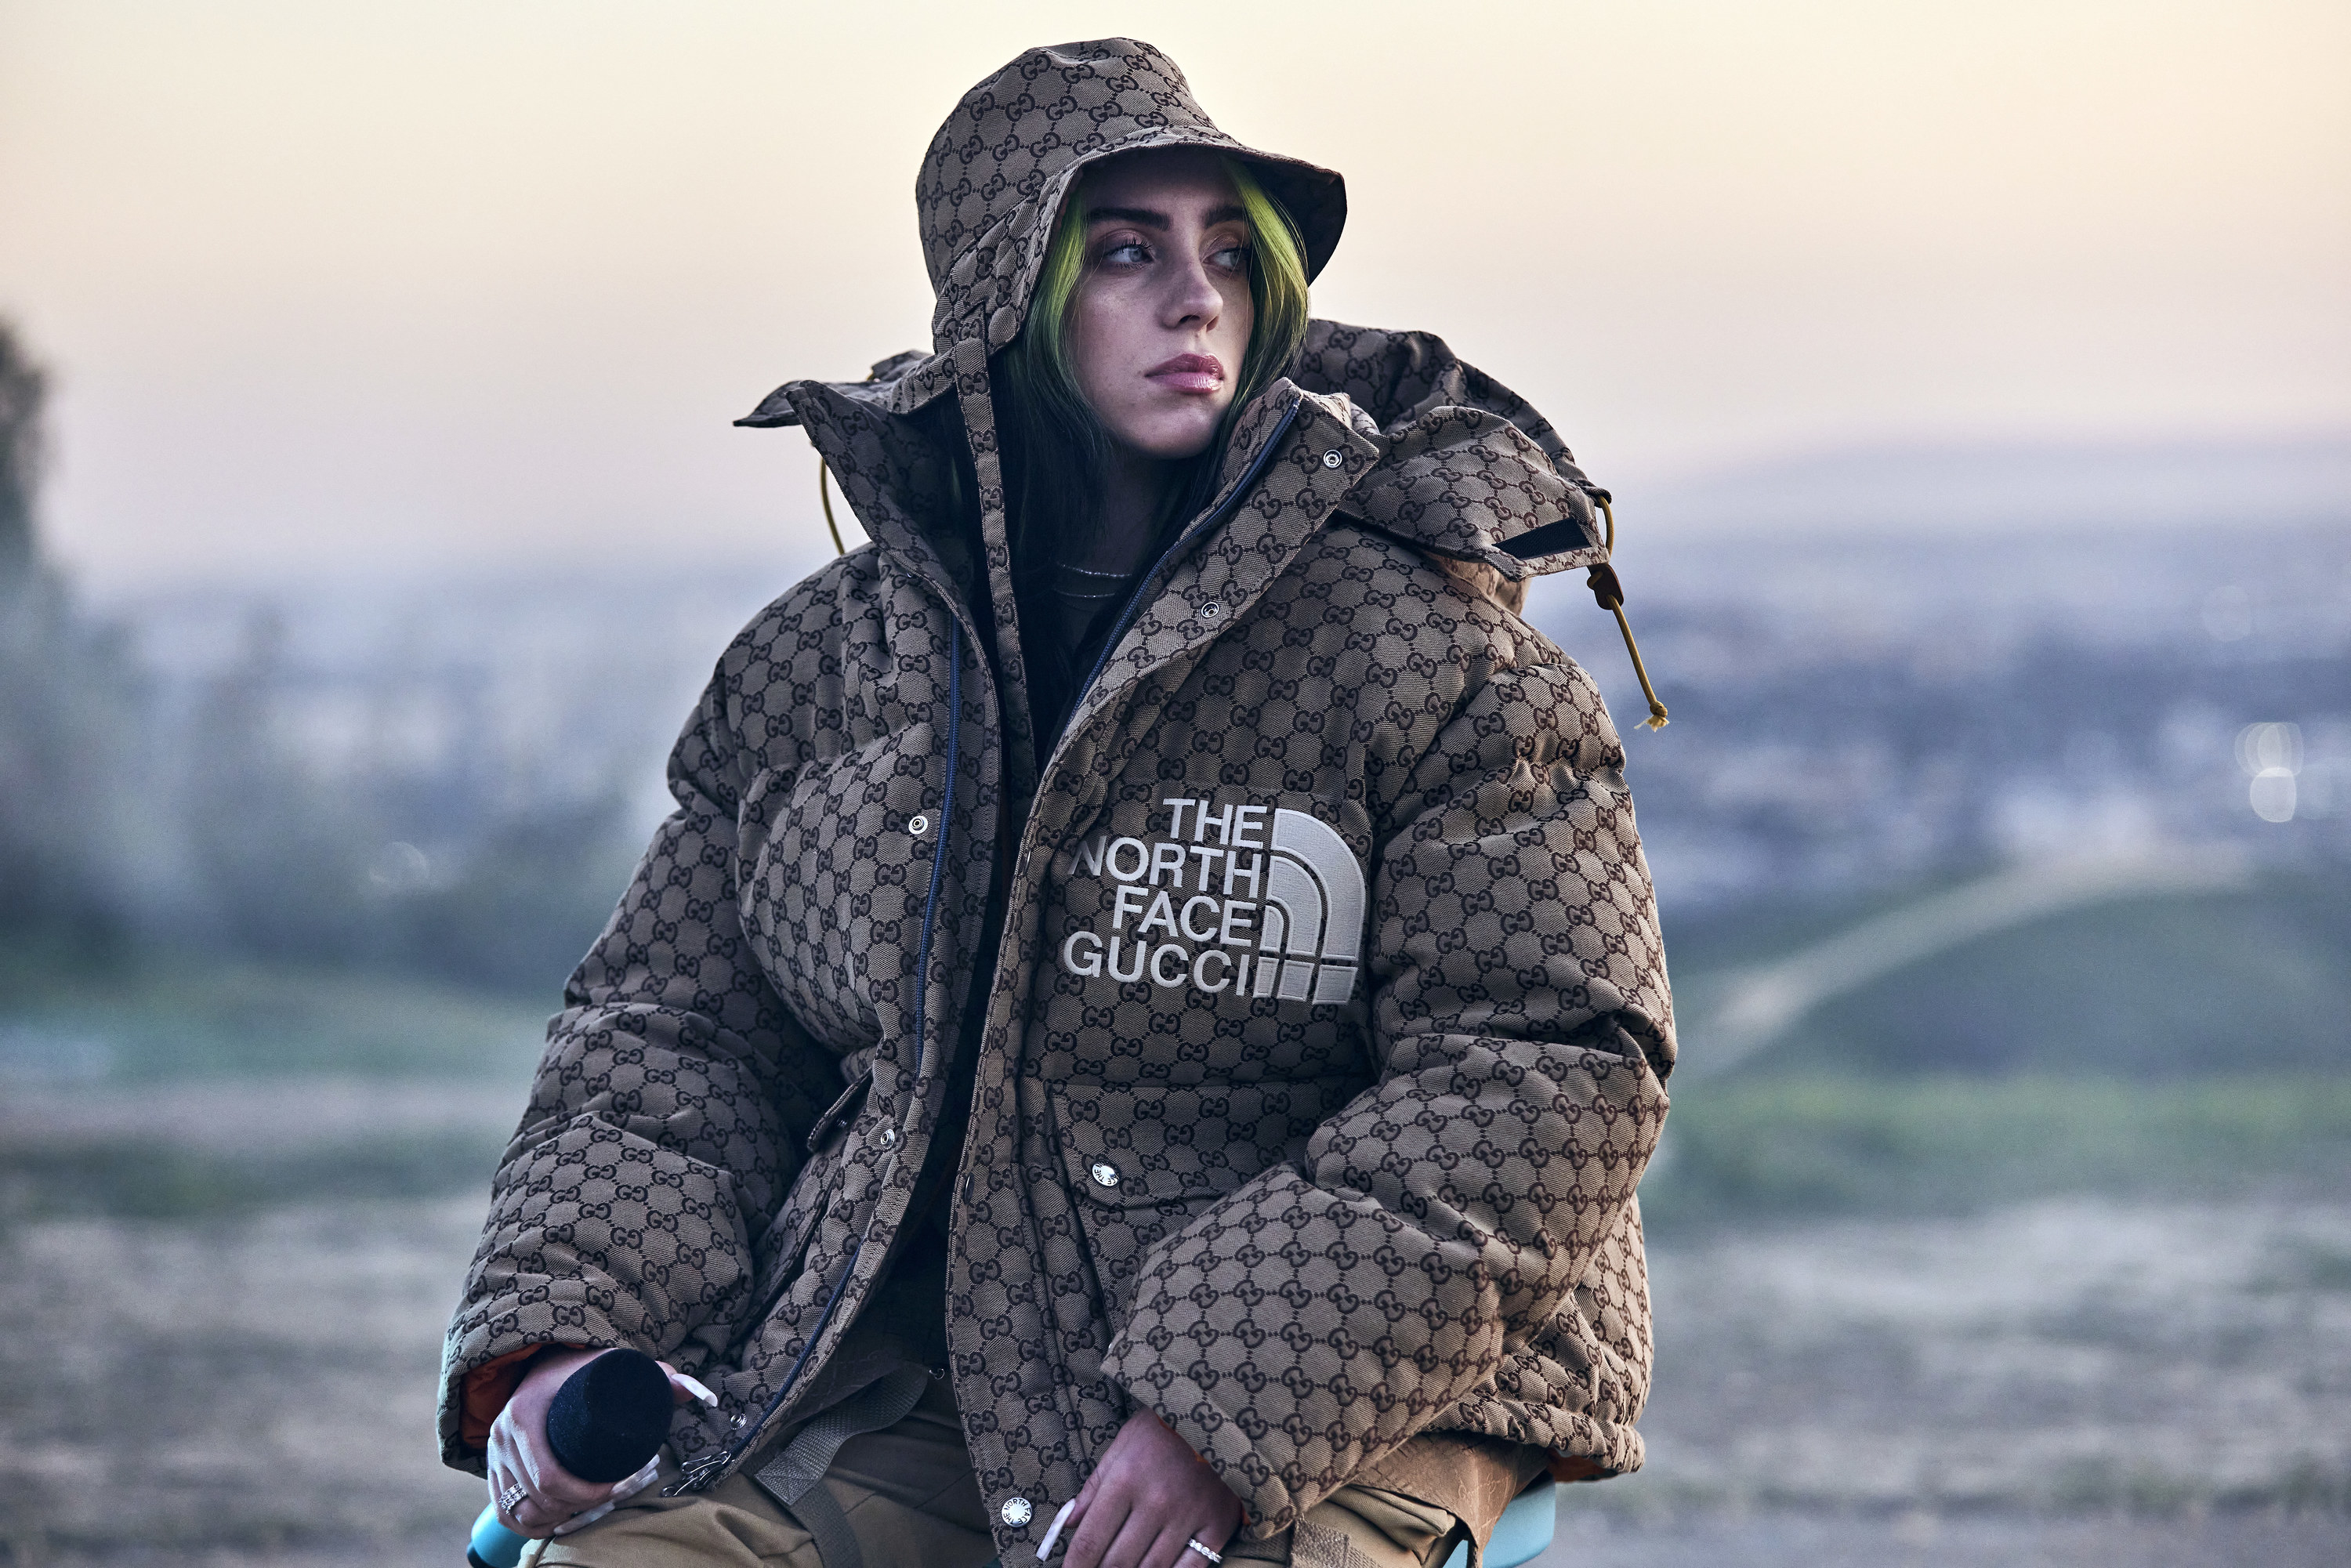 Billie wearing a large North Face puffer jacket with matching bucket hat